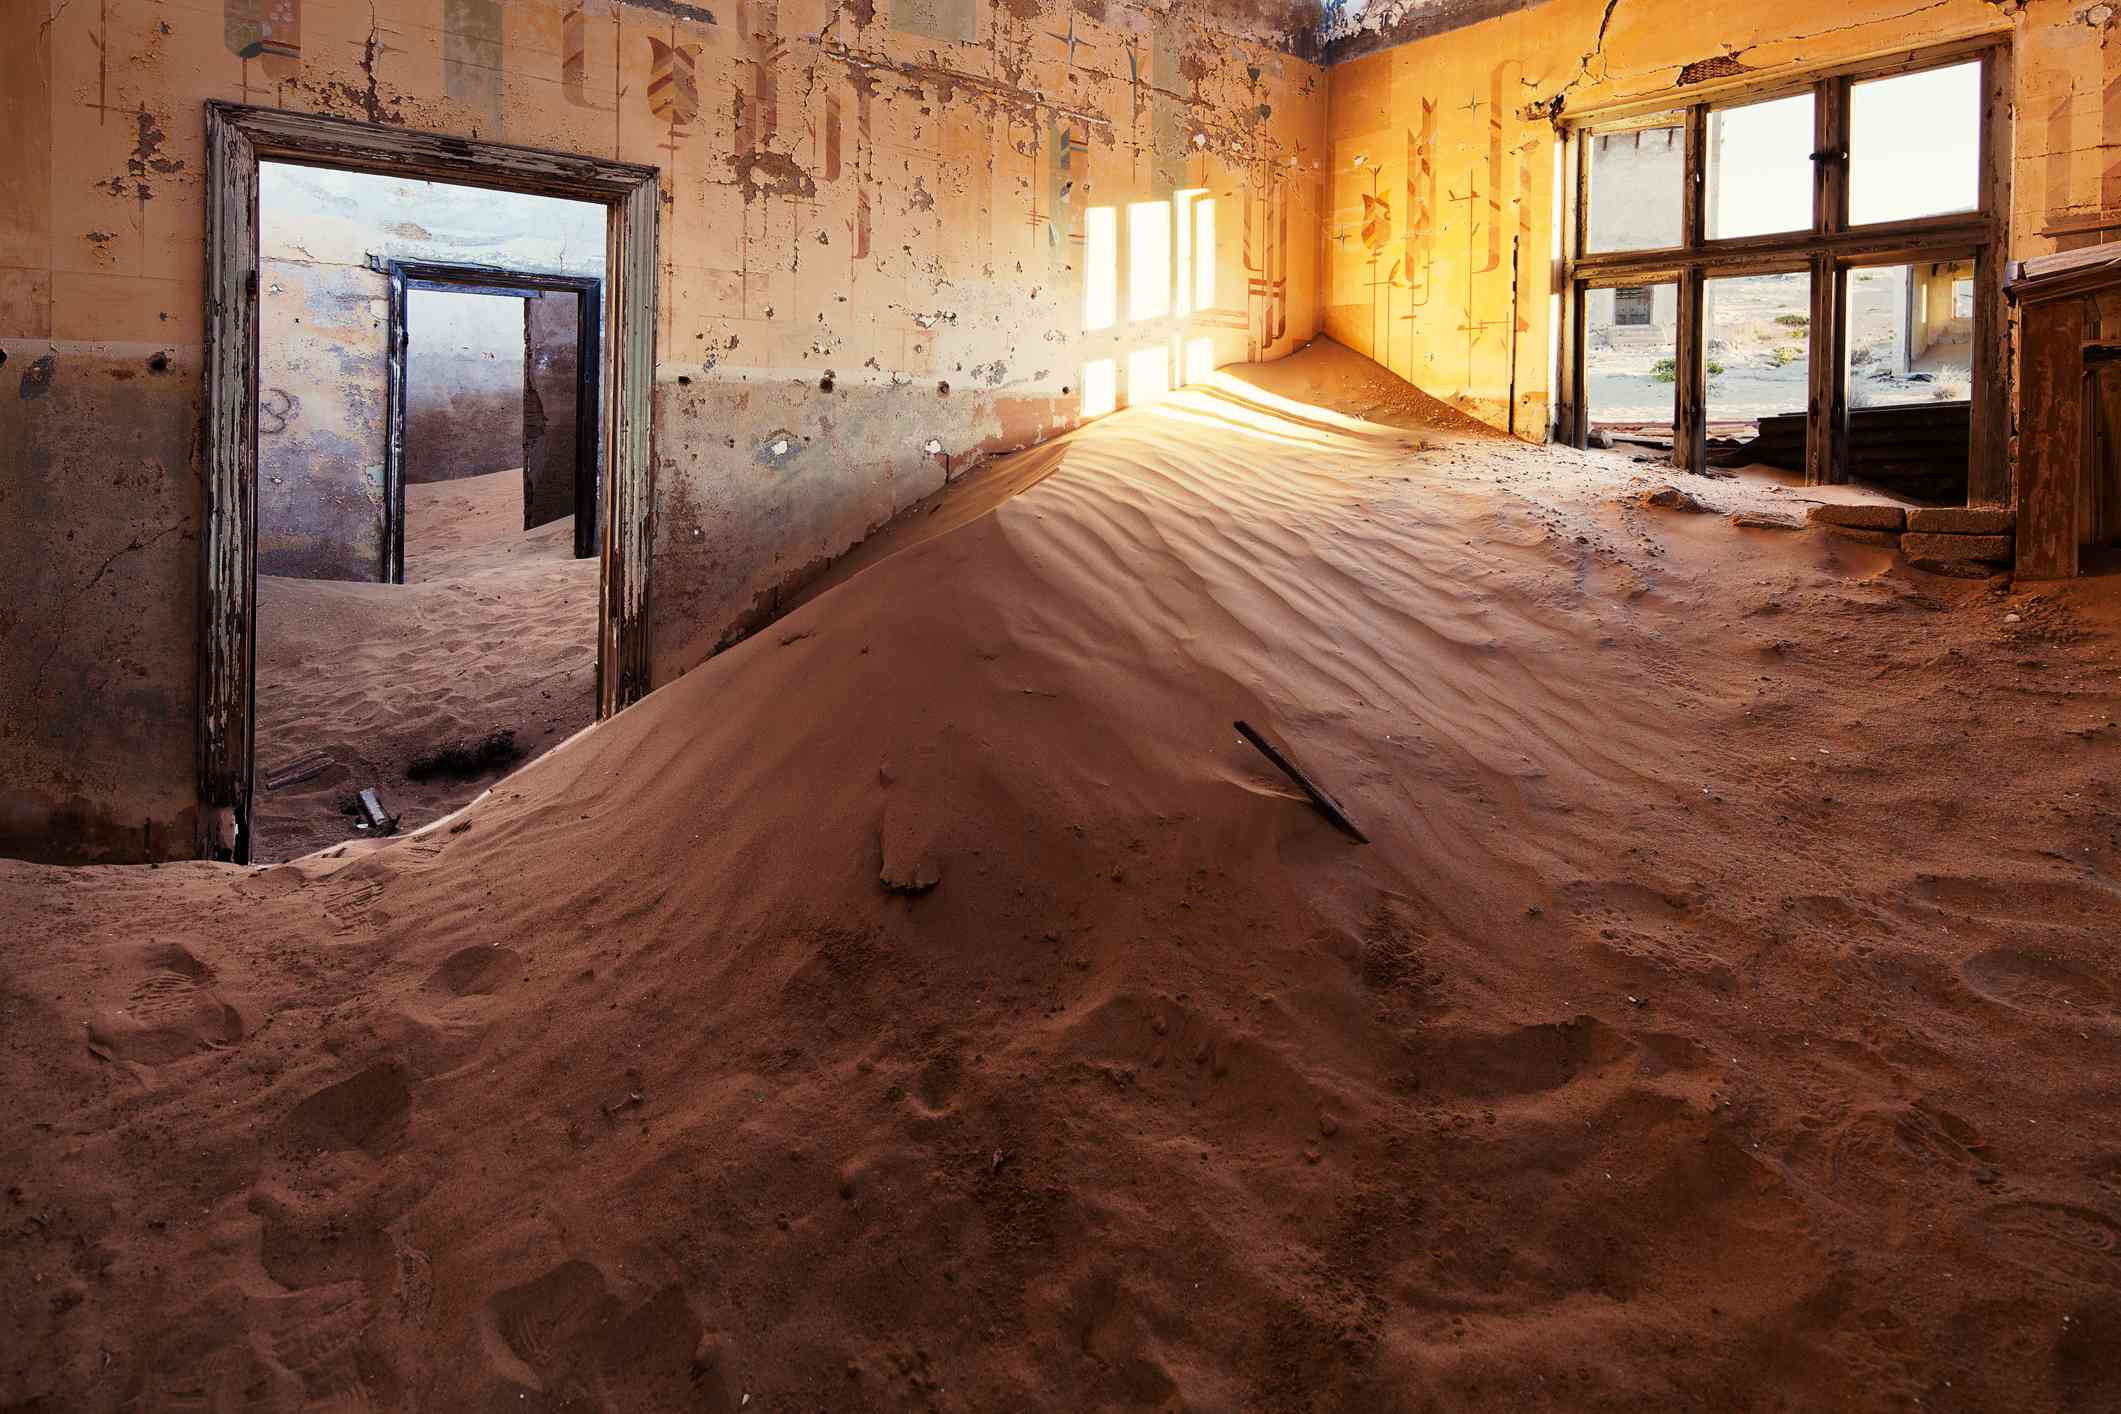 Sand-filled room in the abandoned town of Kolmanskop, Namibia